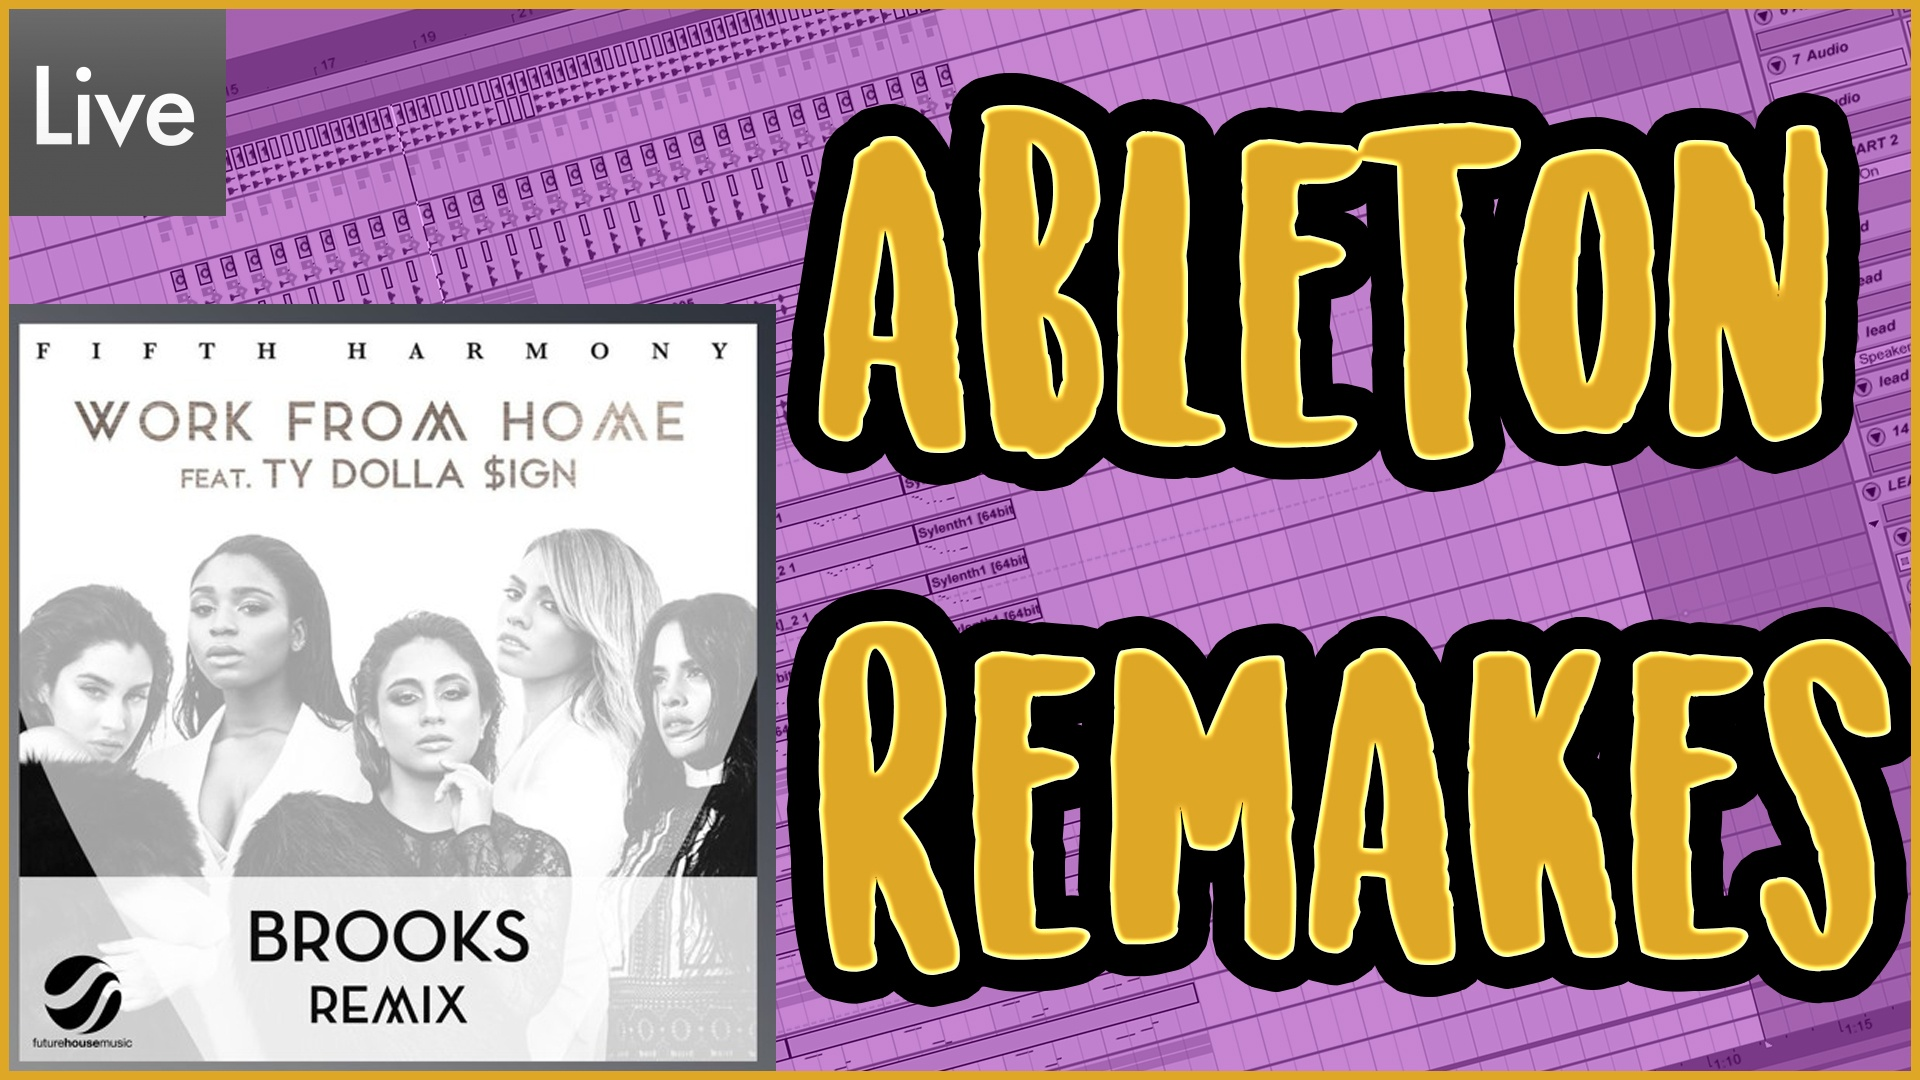 Fifth Harmony - Work from home (Brooks remix) [DOWNLOAD TEMPLATE]